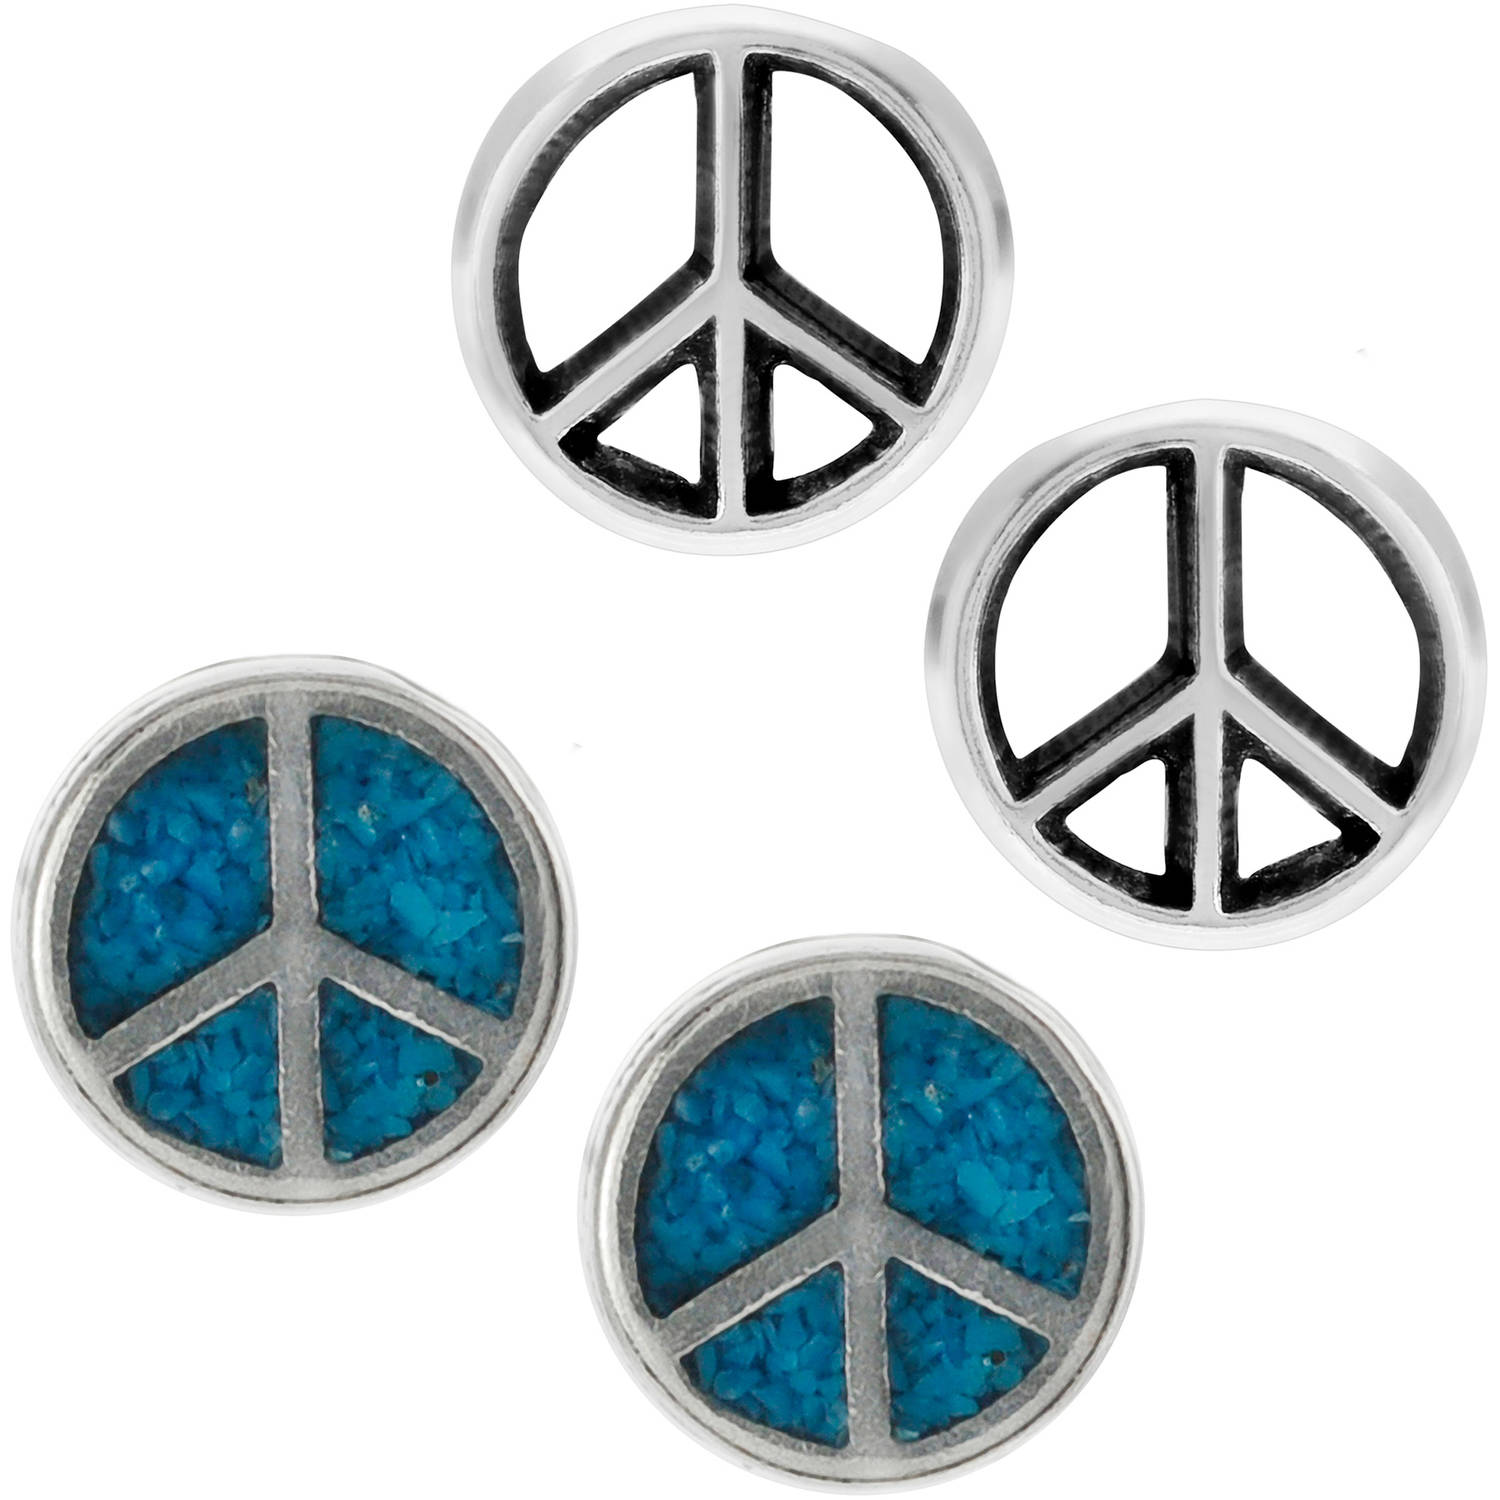 Brinley Co. Women's Turquoise Sterling Silver Peace Sign Stud Earrings Set, 2 Pairs